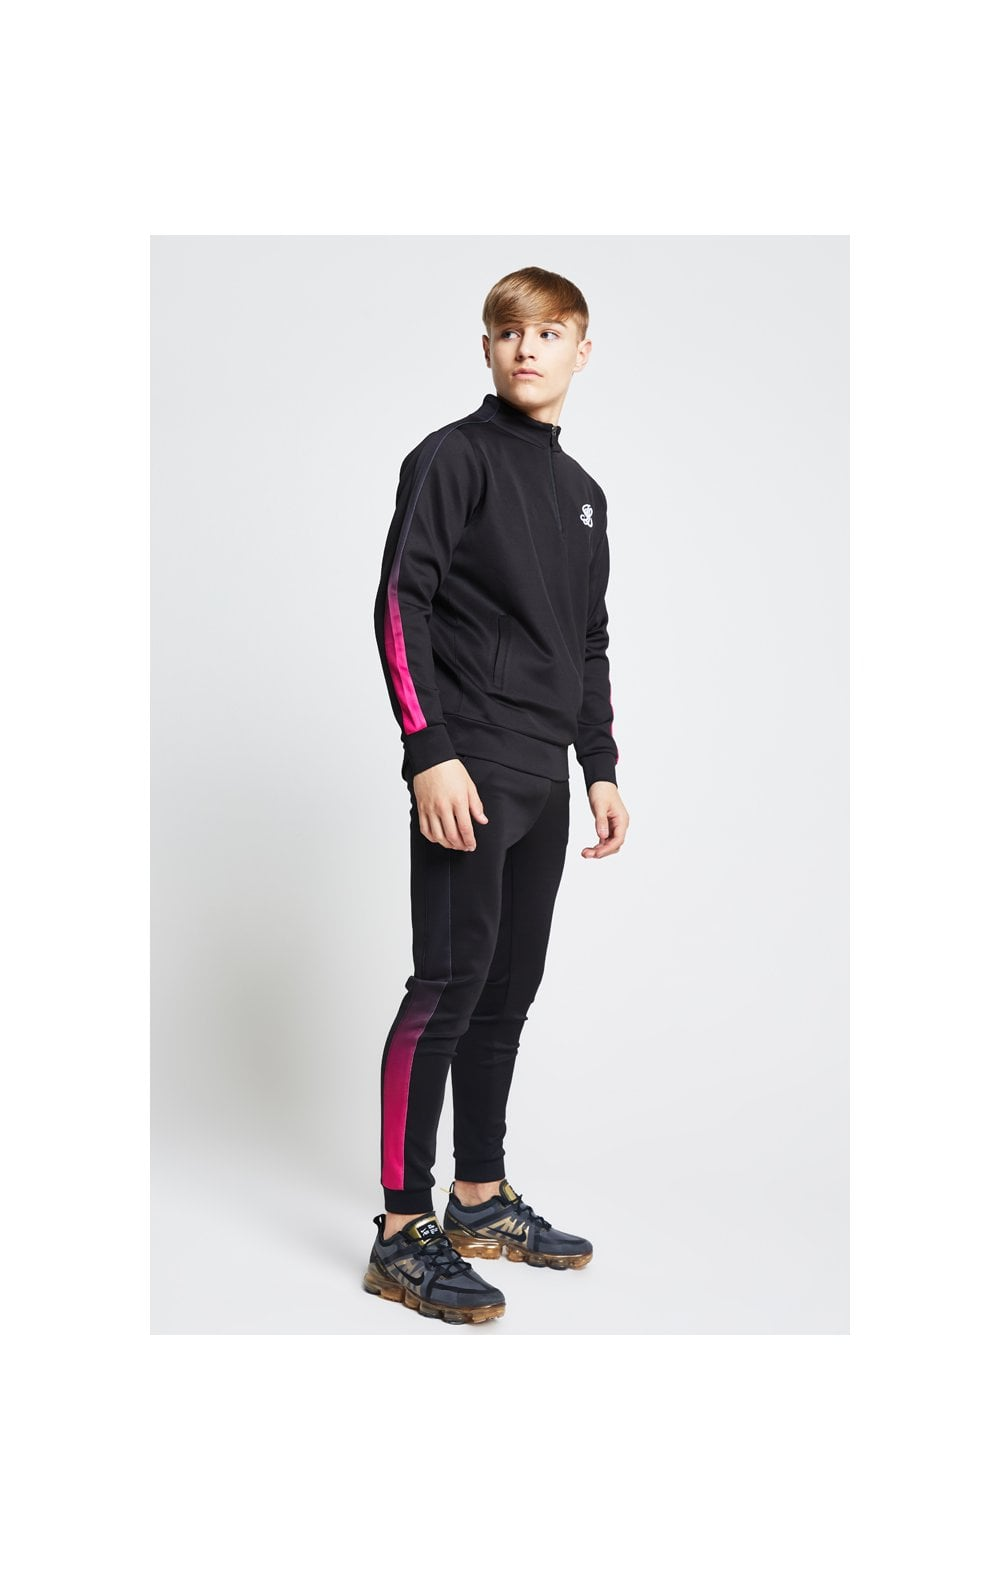 Load image into Gallery viewer, Illusive London Fade Panel Funnel Neck 1/4 Zip Hoodie - Black & Pink (4)